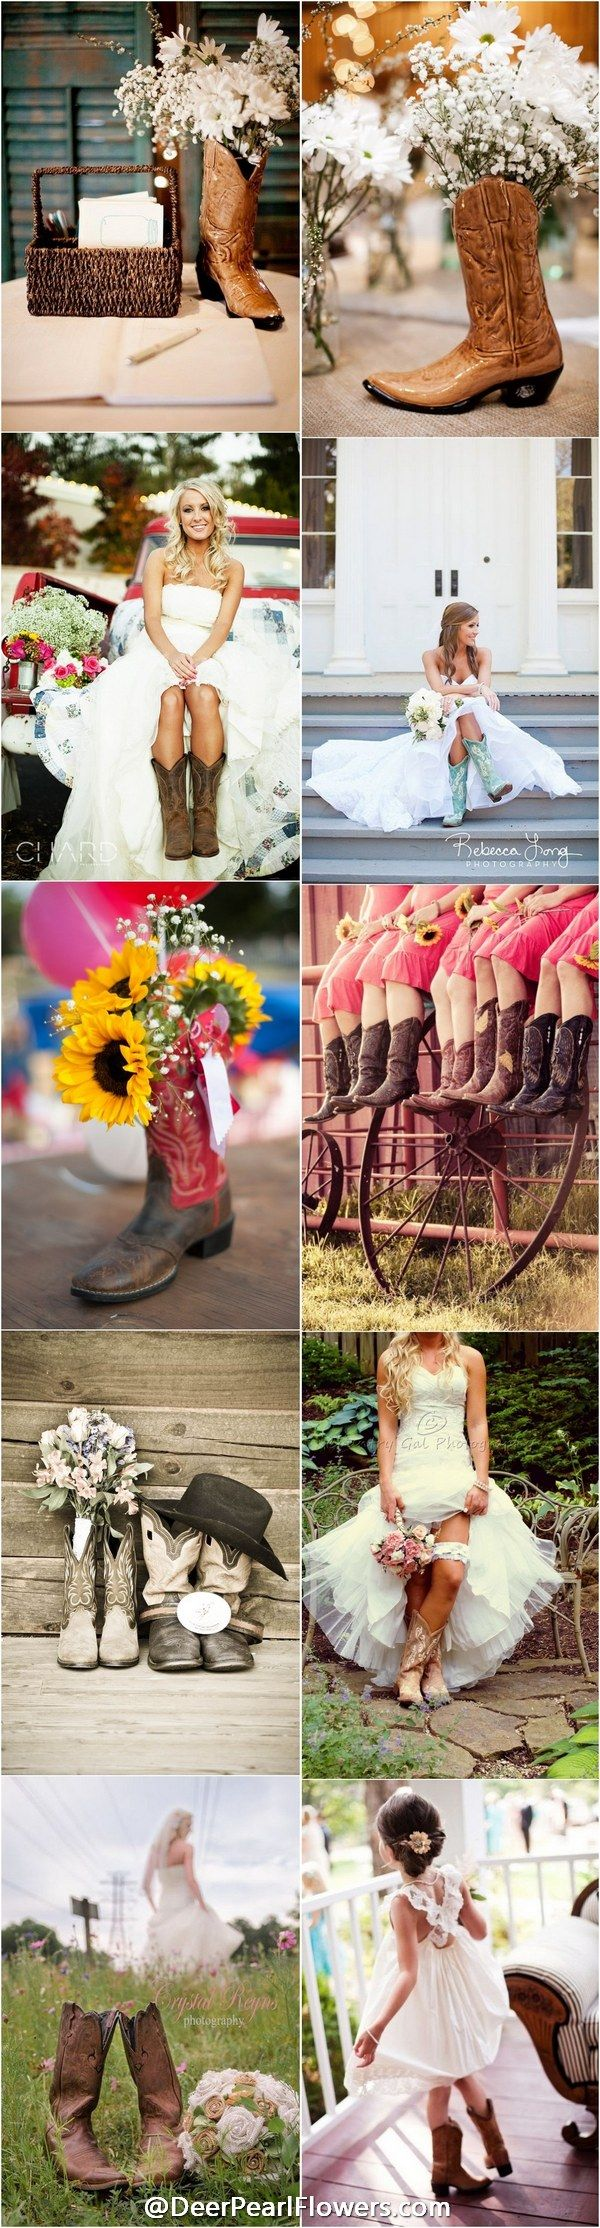 rustic country cowboy cowgirl wedding ideas / http://www.deerpearlflowers.com/cowgirl-boots-fall-wedding-ideas/